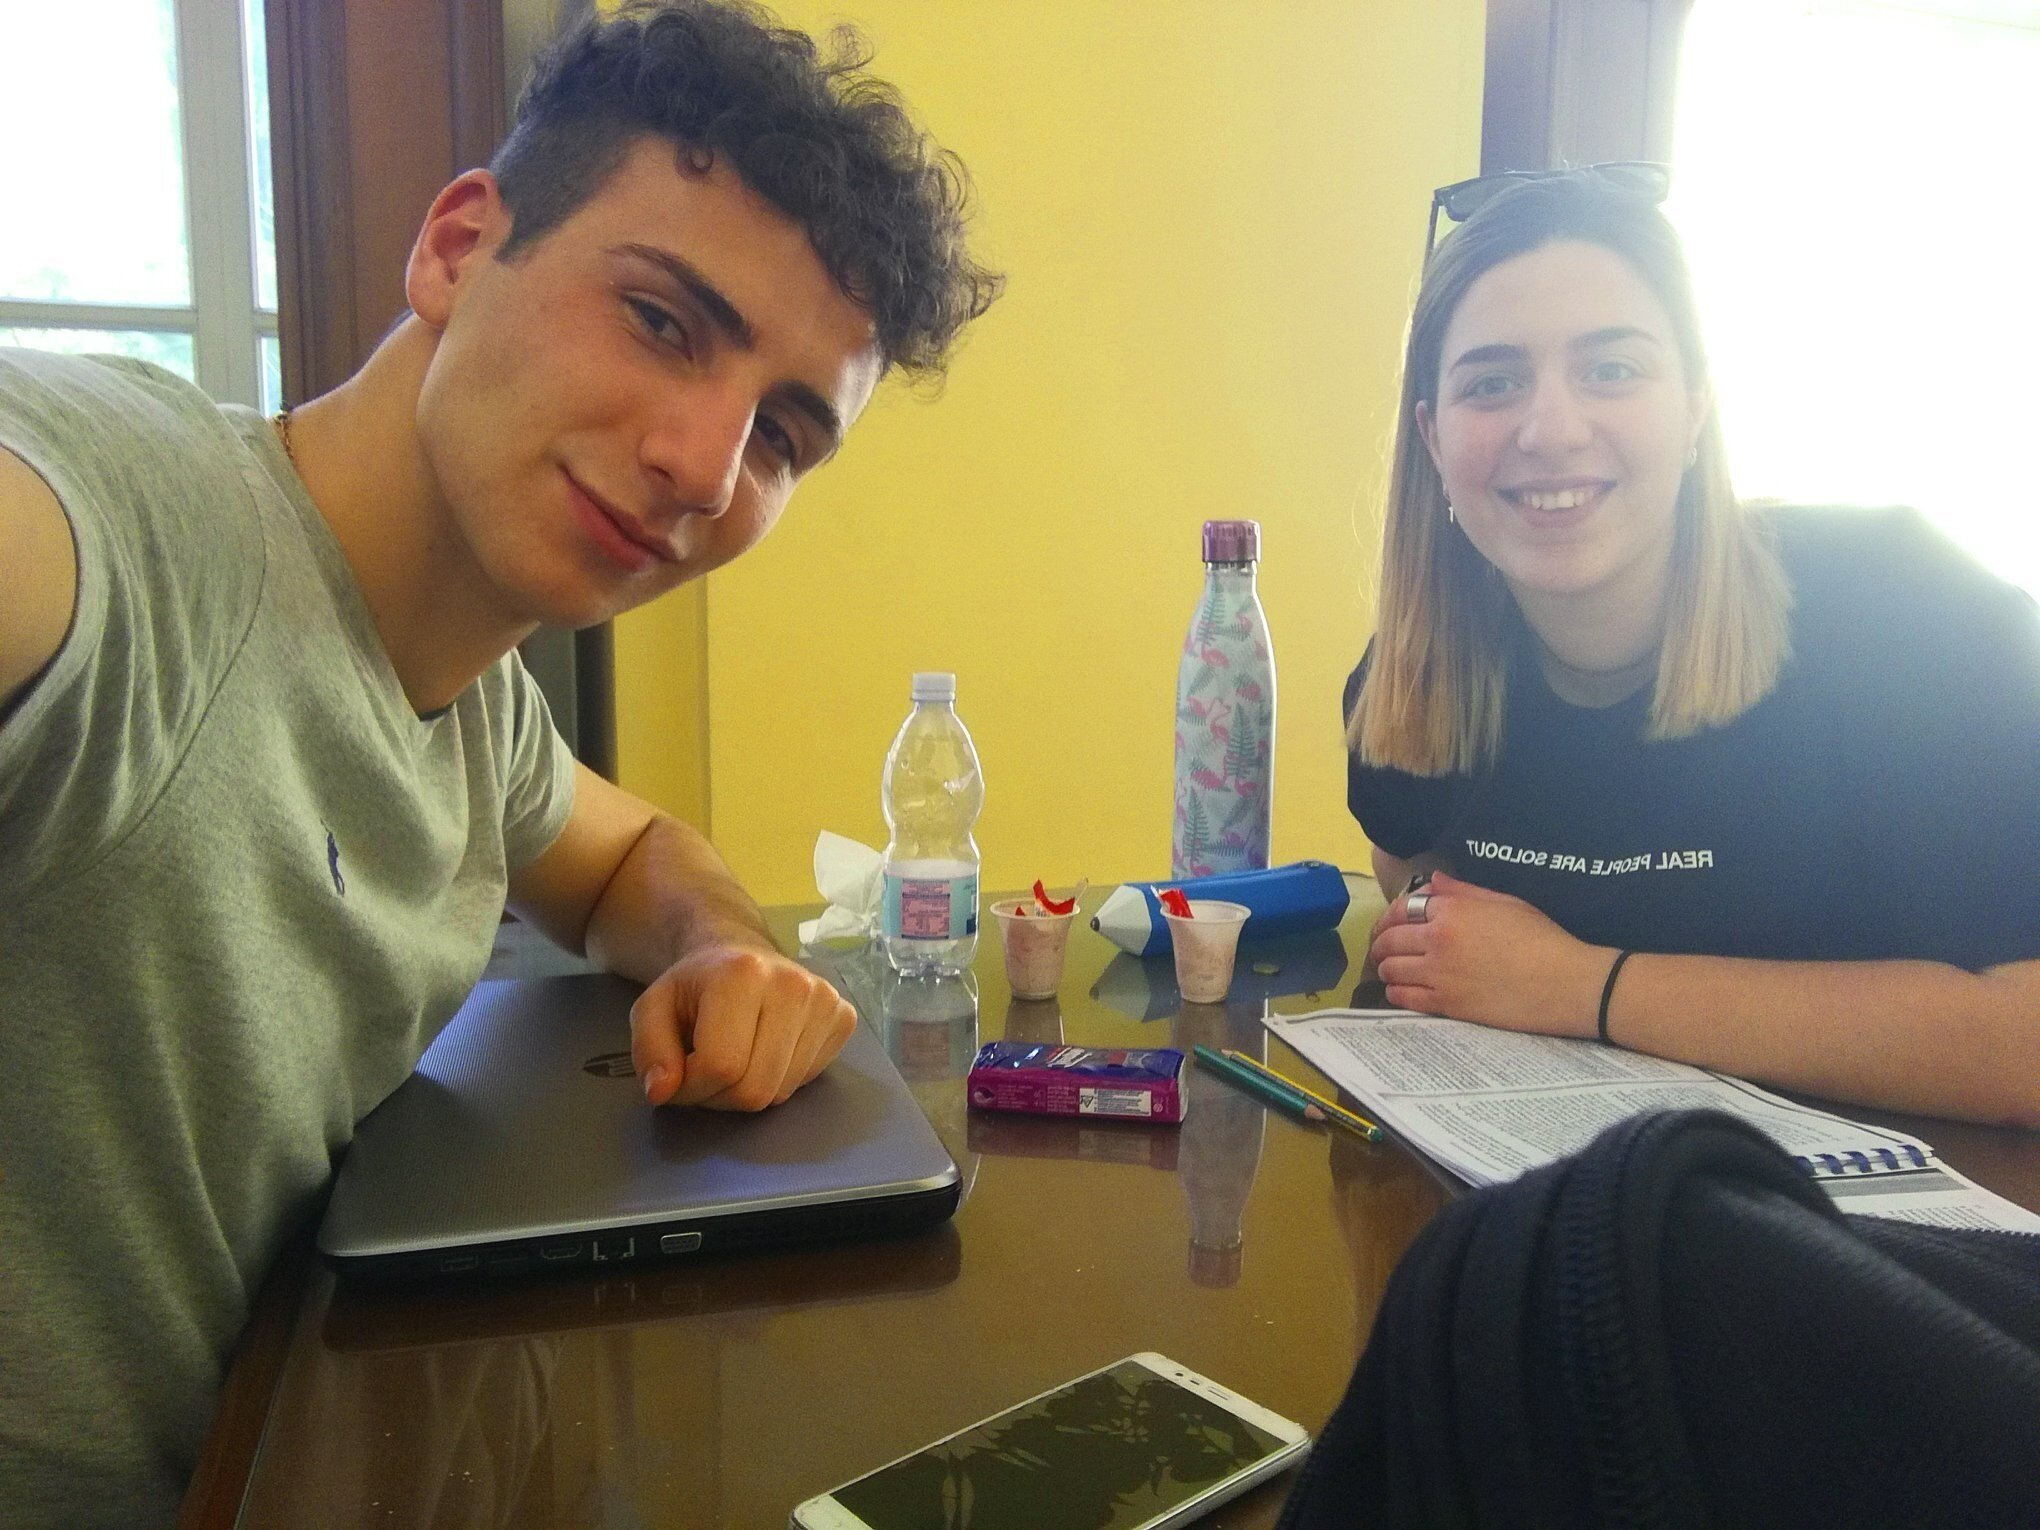 Greetings from Italy to the lovely IFB - Ludovica & Giacomo, Italien